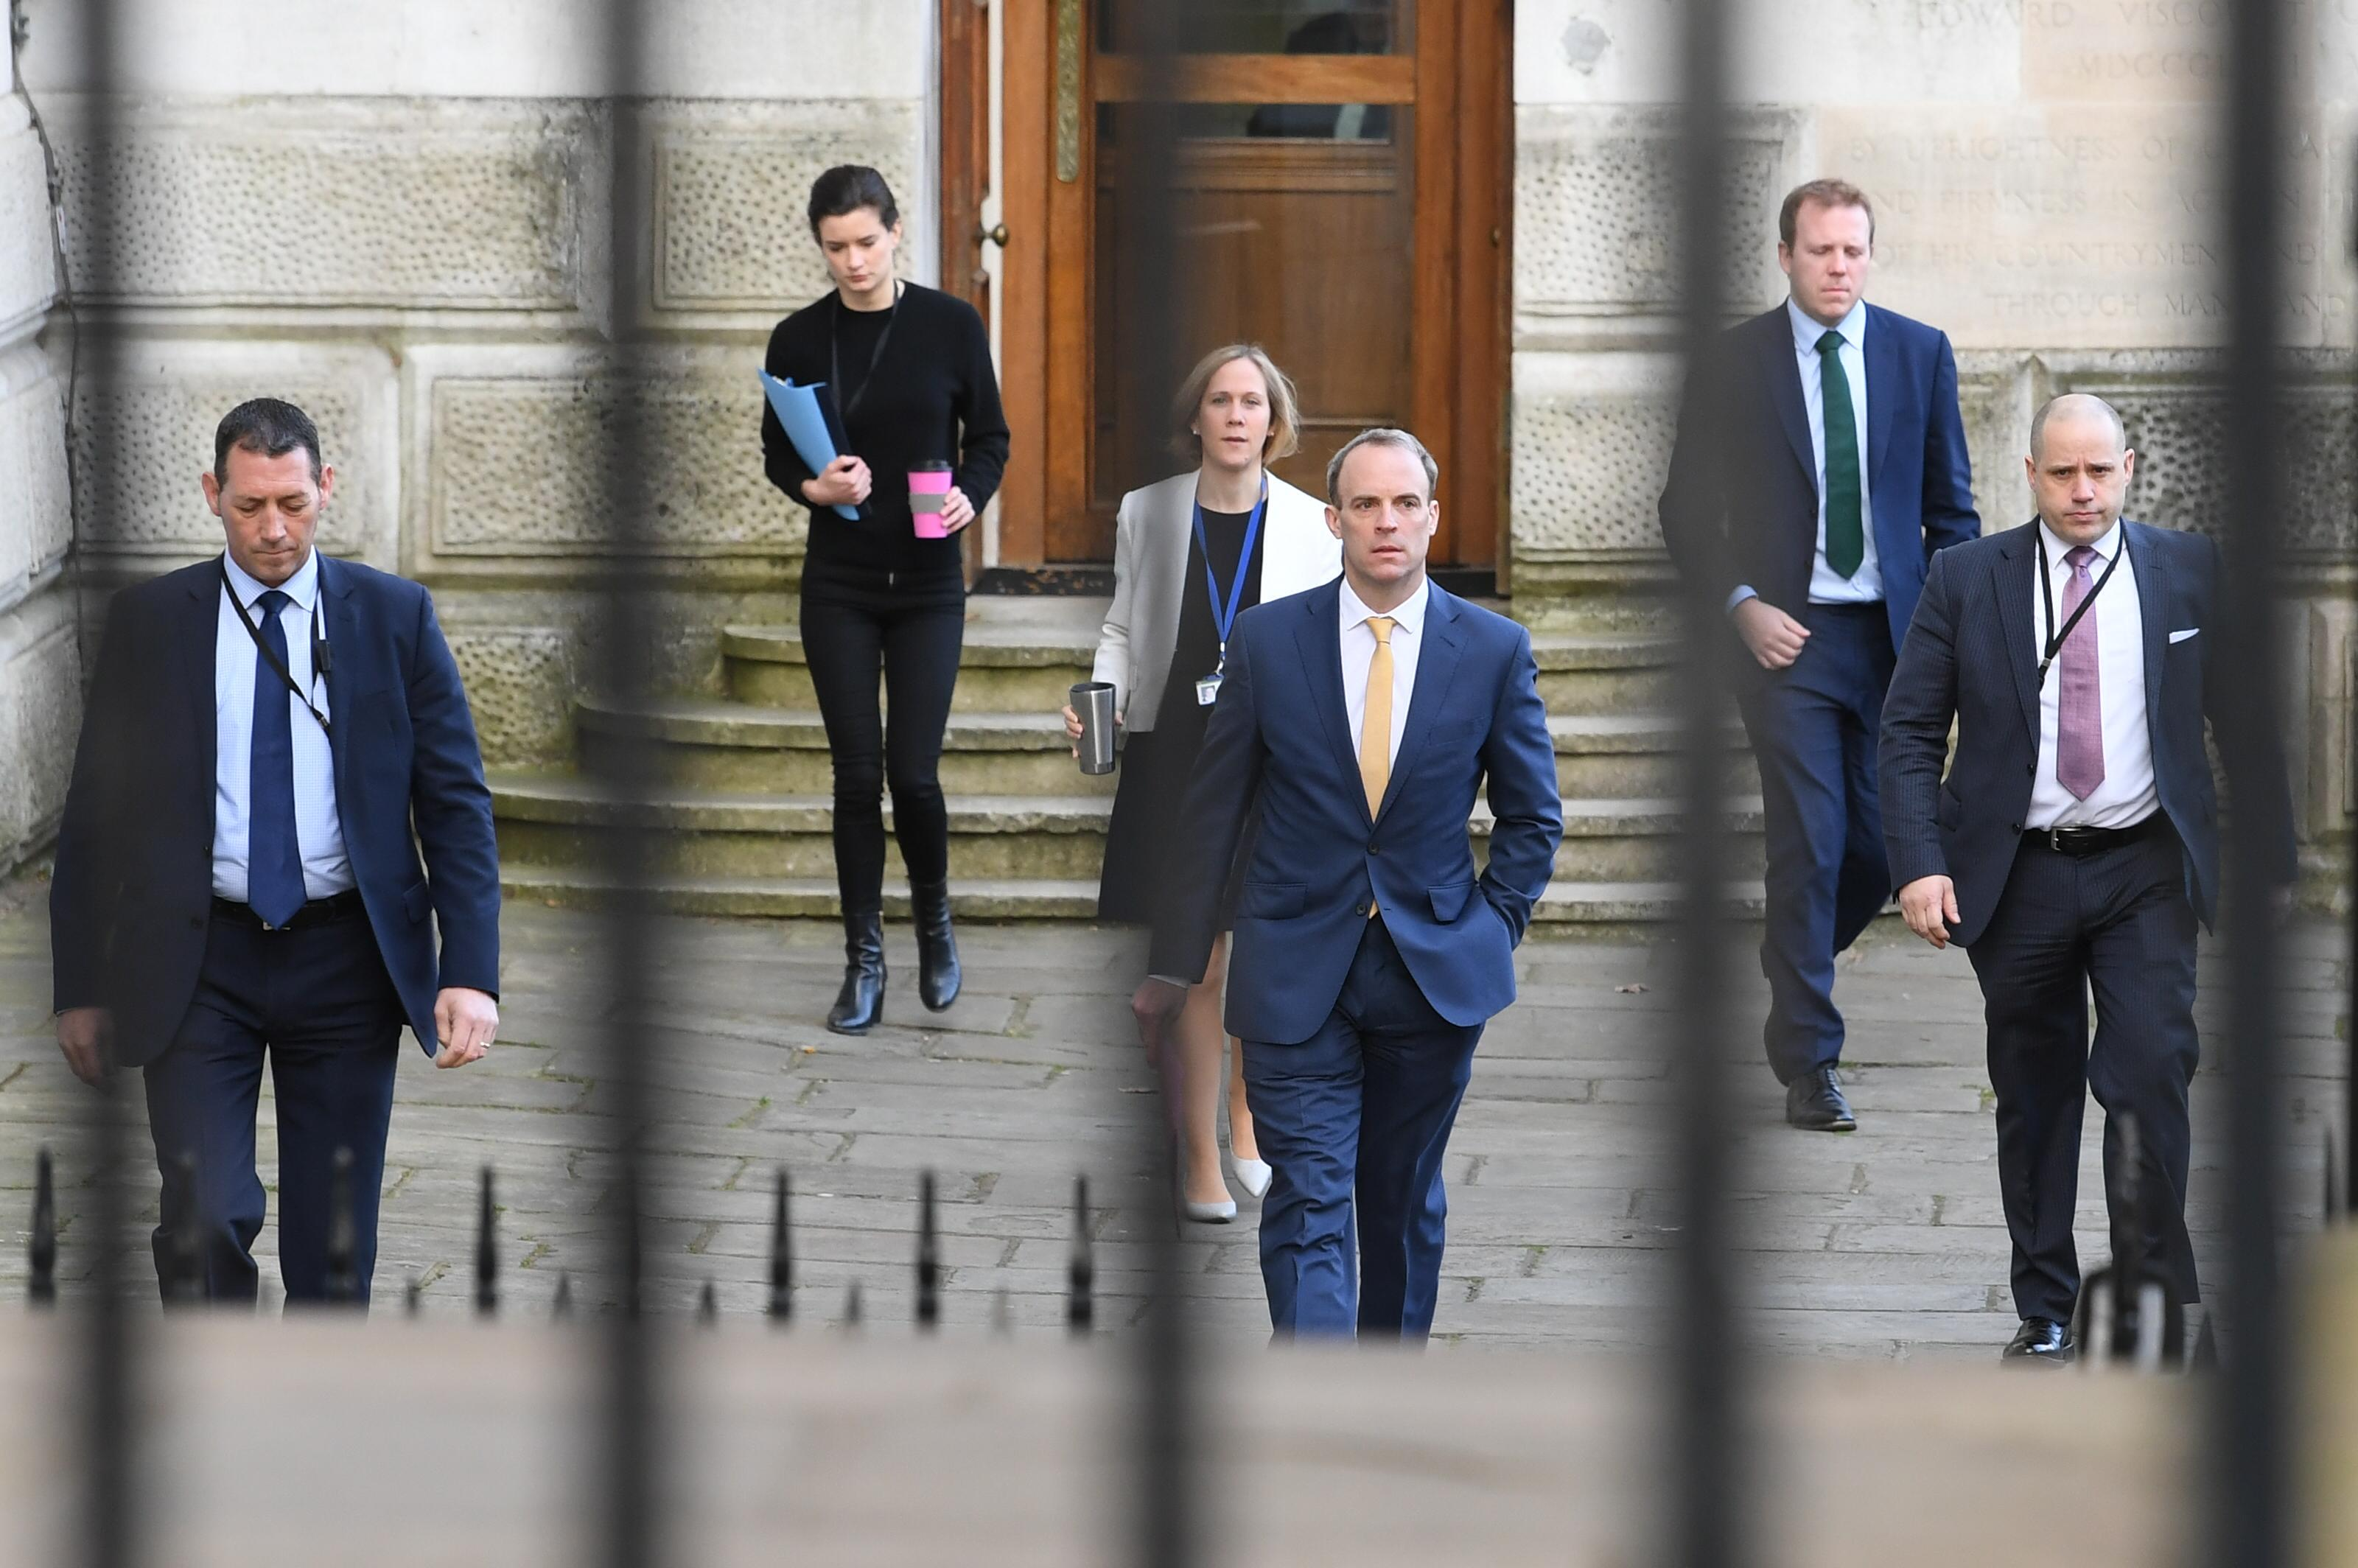 Foreign Secretary Dominic Raab (centre), who is taking charge of the Government's response to the coronavirus crisis after Prime Minister Boris Johnson was admitted to intensive care Monday, arrives at 10 Downing Street, London.